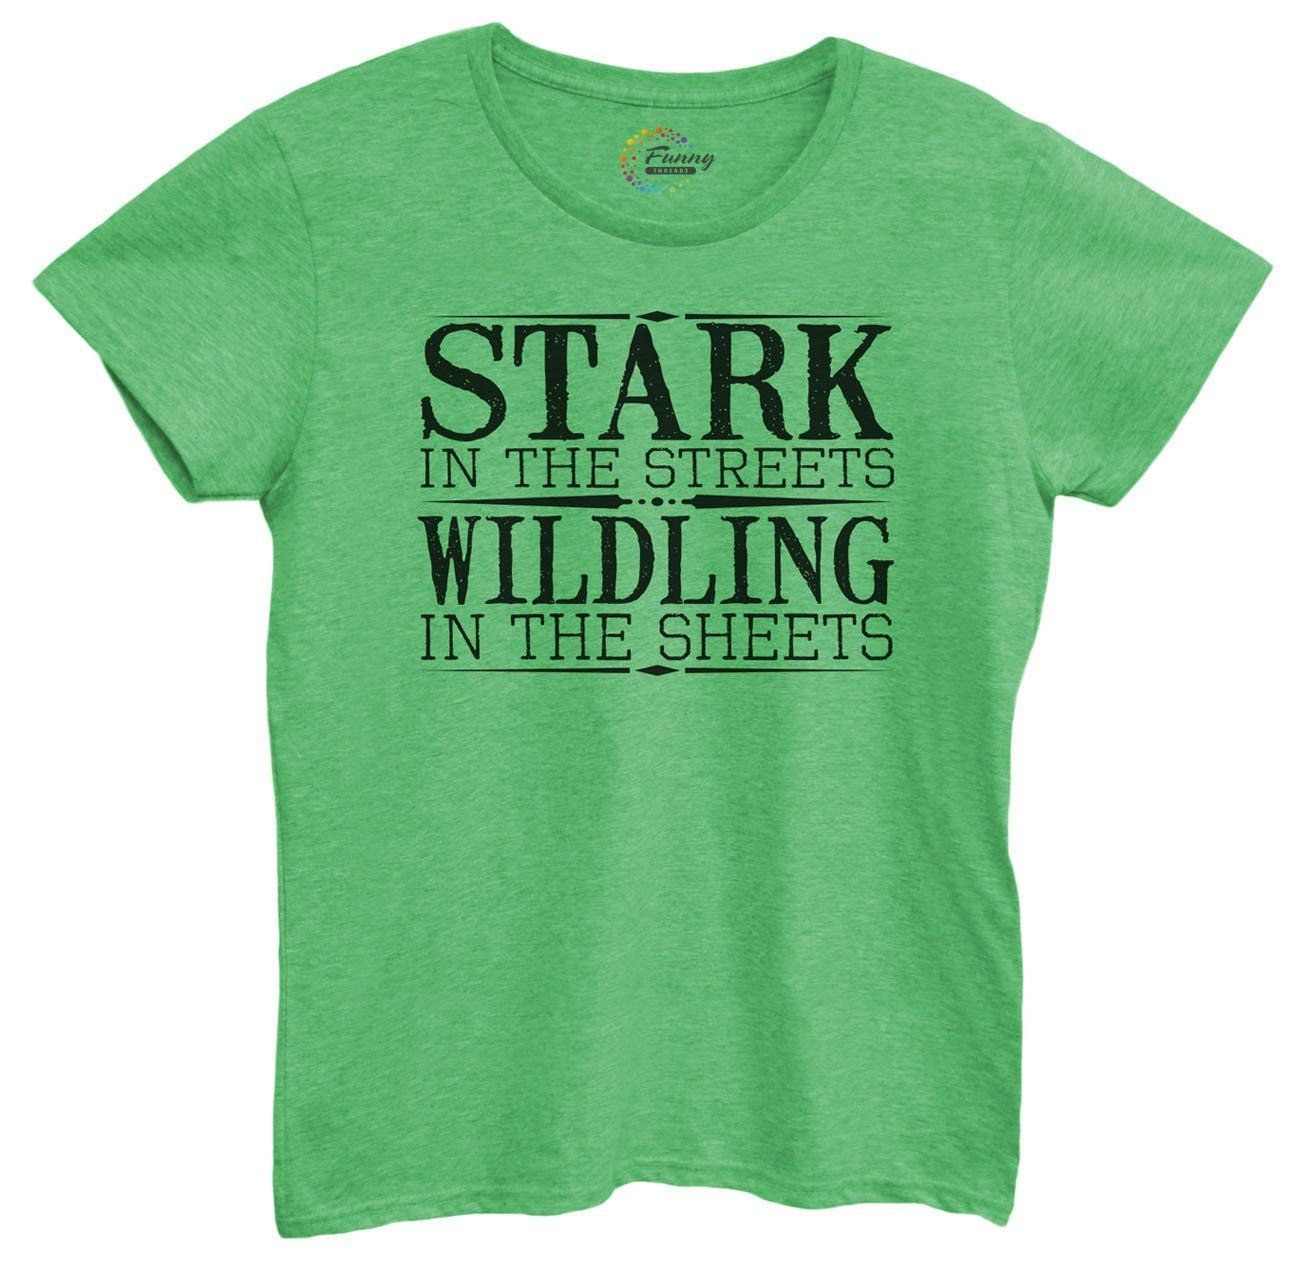 I/'m A Stark On The Streets But A Wildling In The Sheets womens fitted sleeve t-s